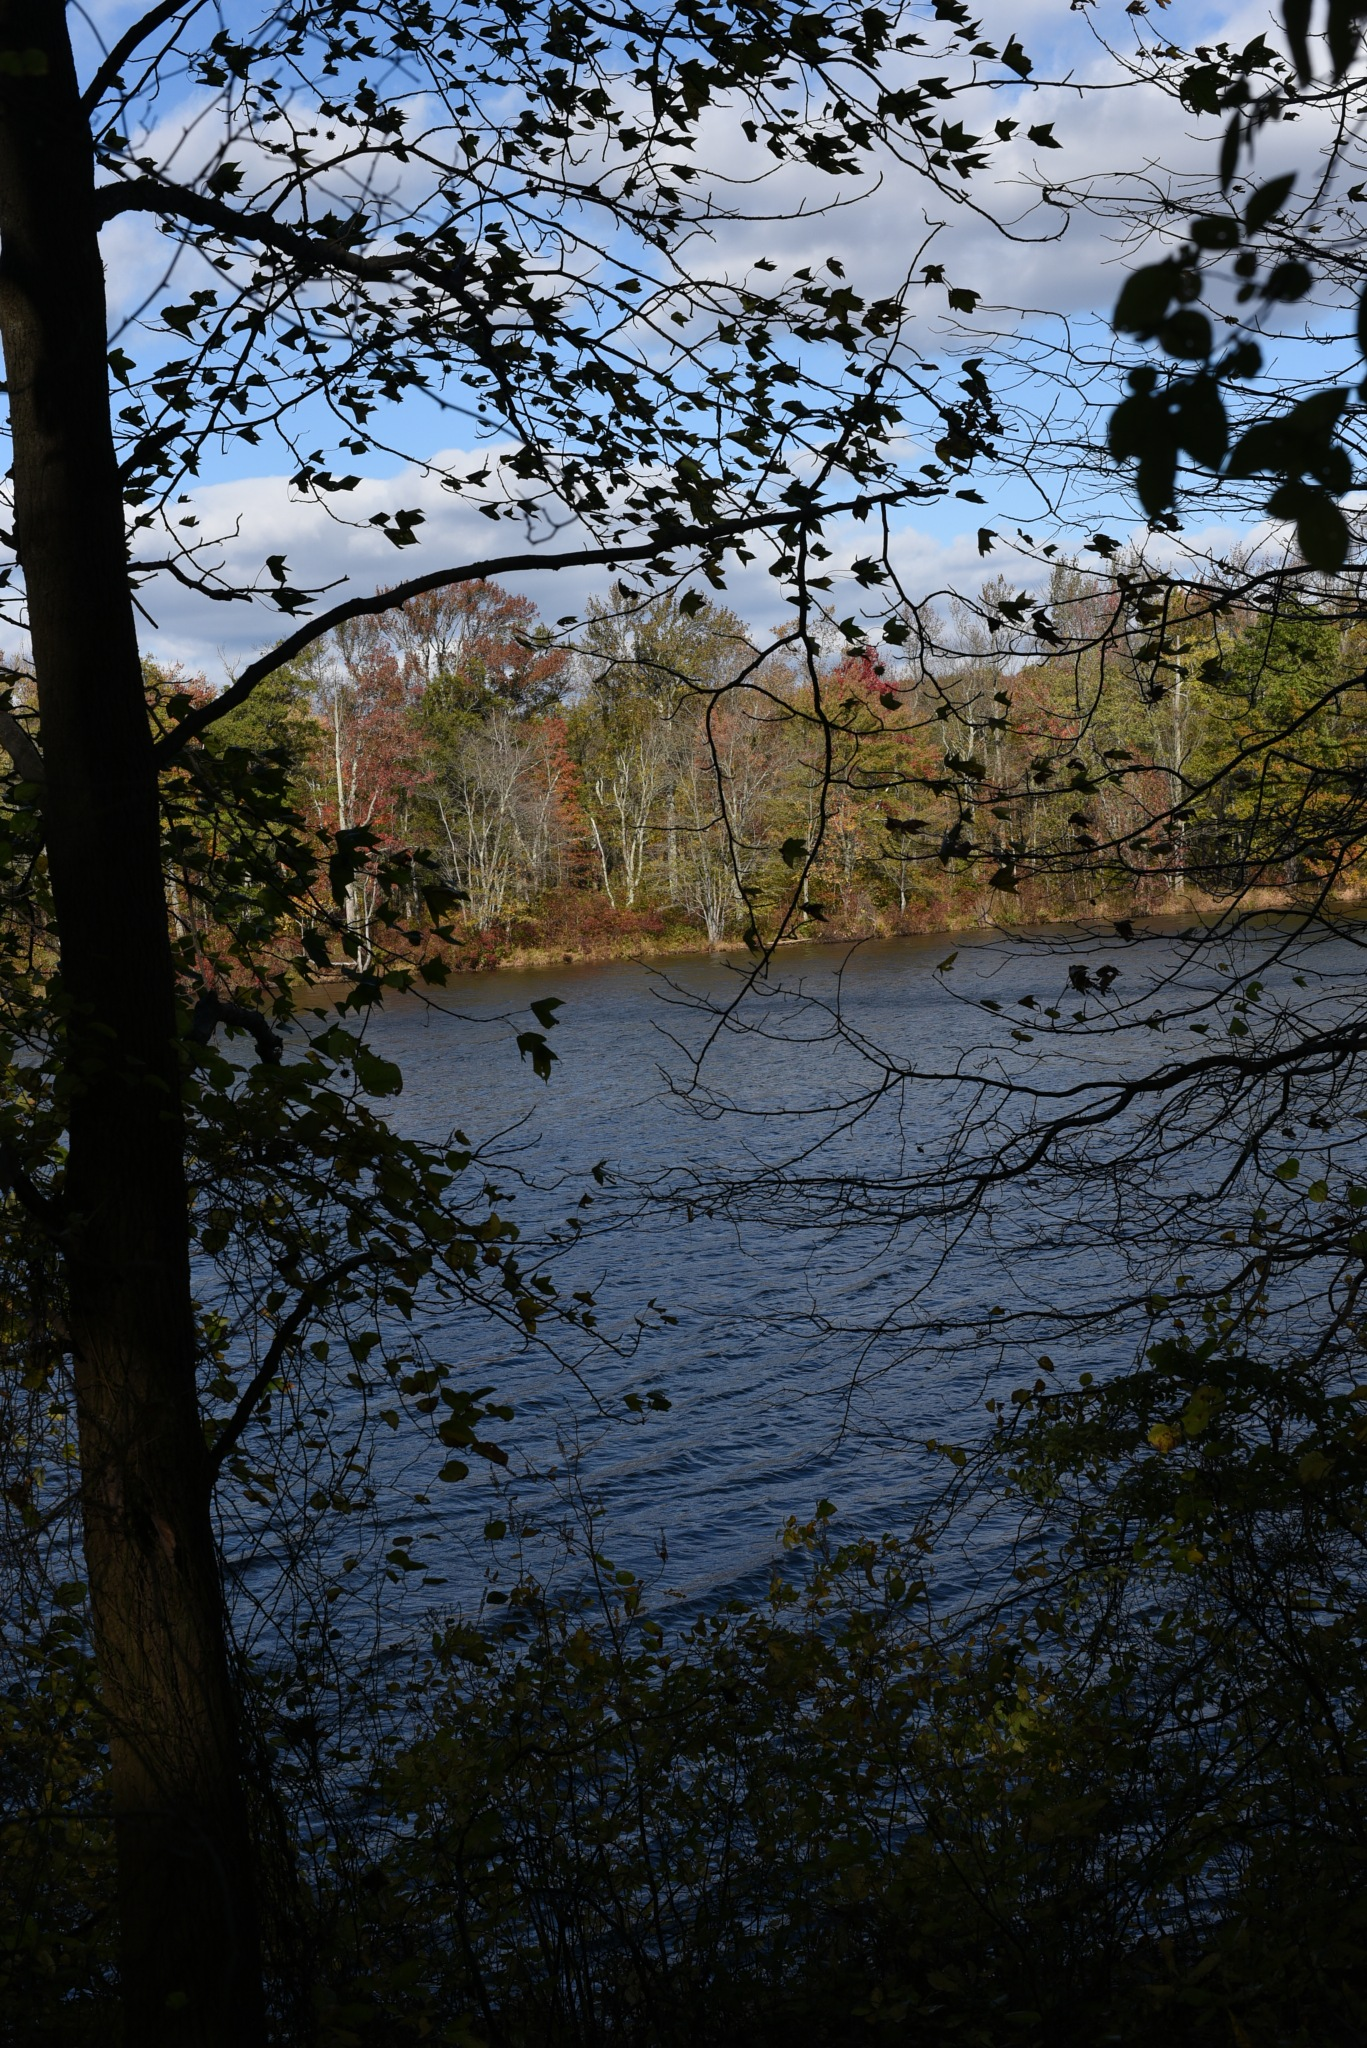 Photography Class - Lake Mercer through the Trees by Vizzpat